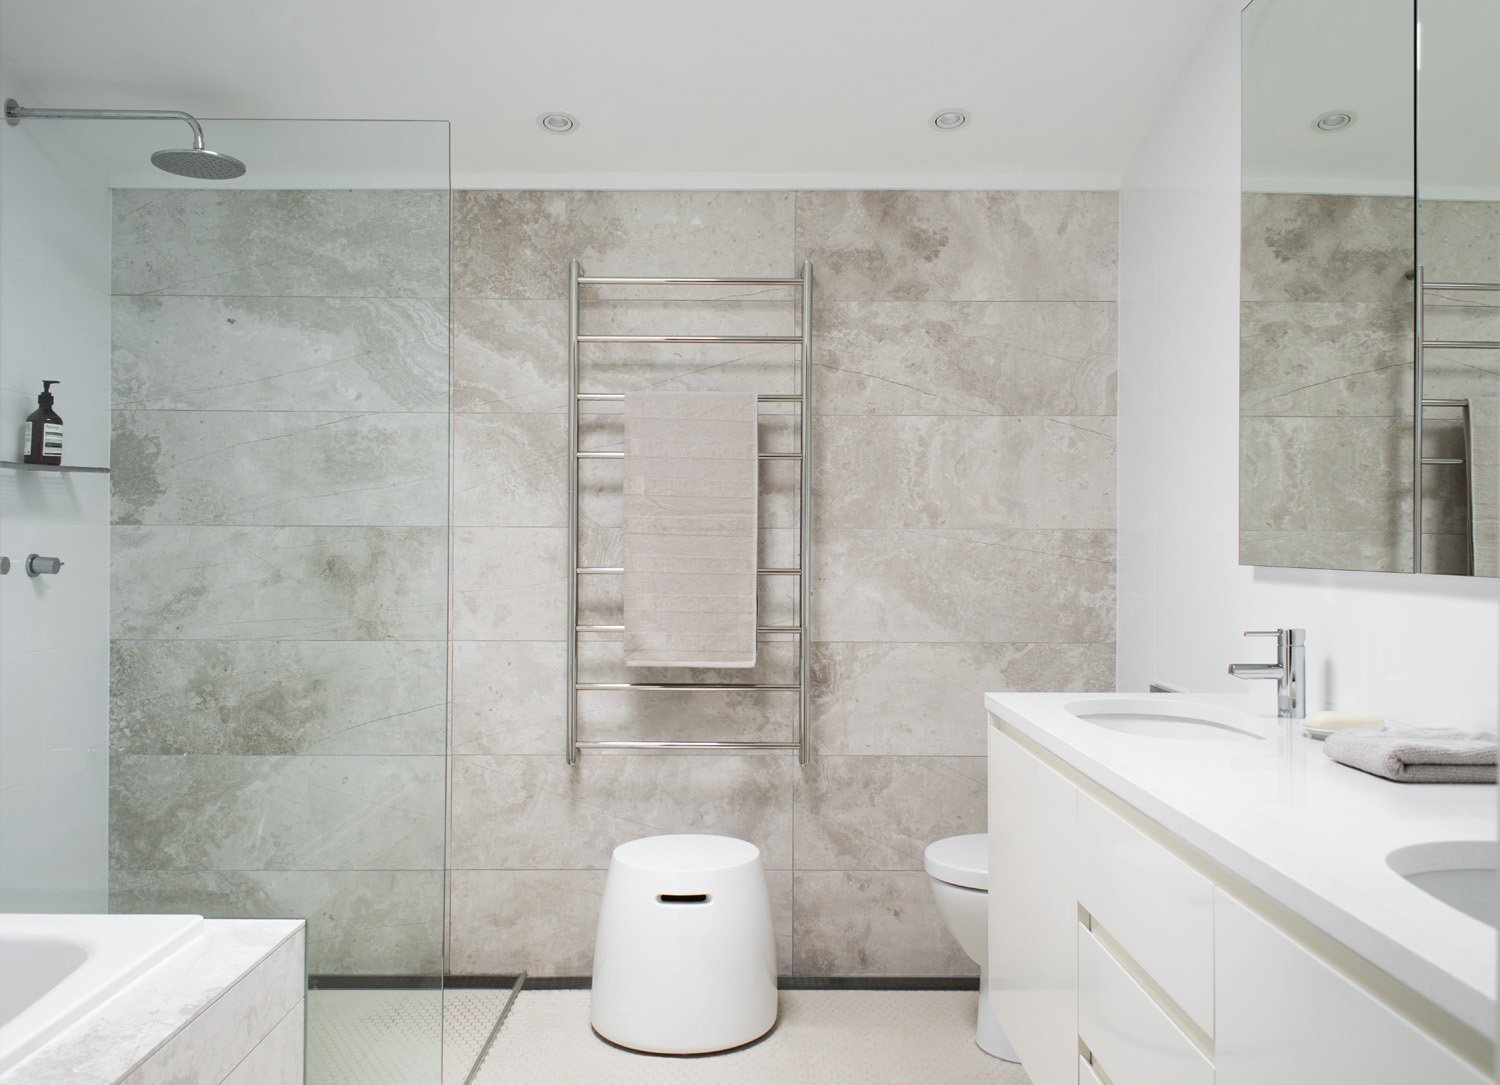 A tiled feature wall evokes depth in a white bathroom